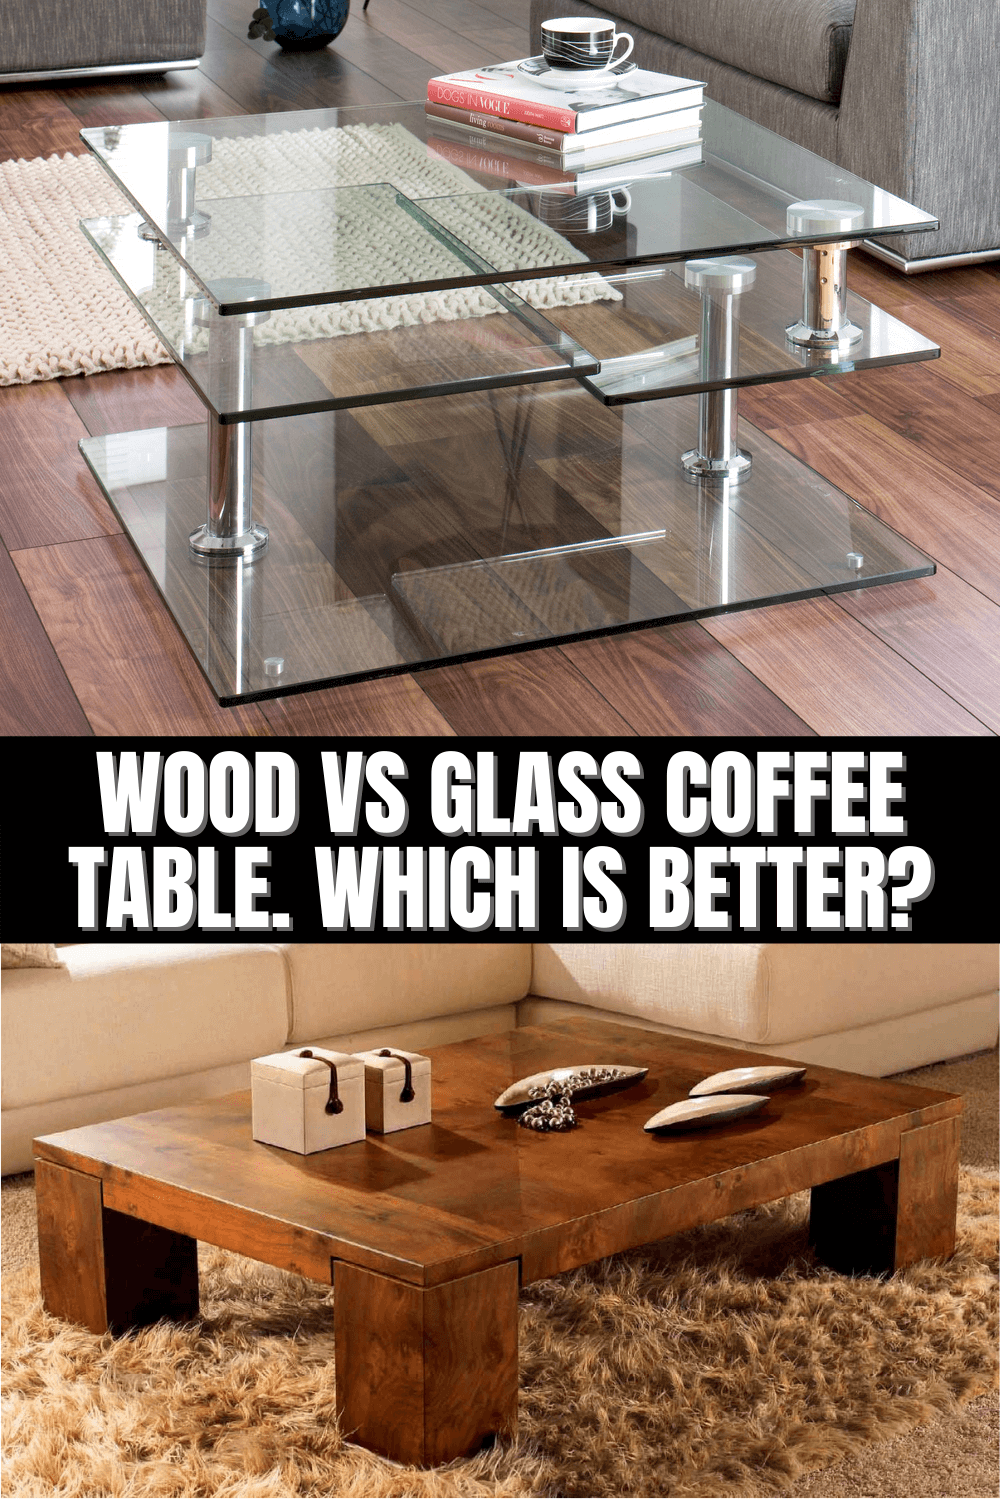 WOOD VS GLASS COFFEE TABLE. WHICH IS BETTER